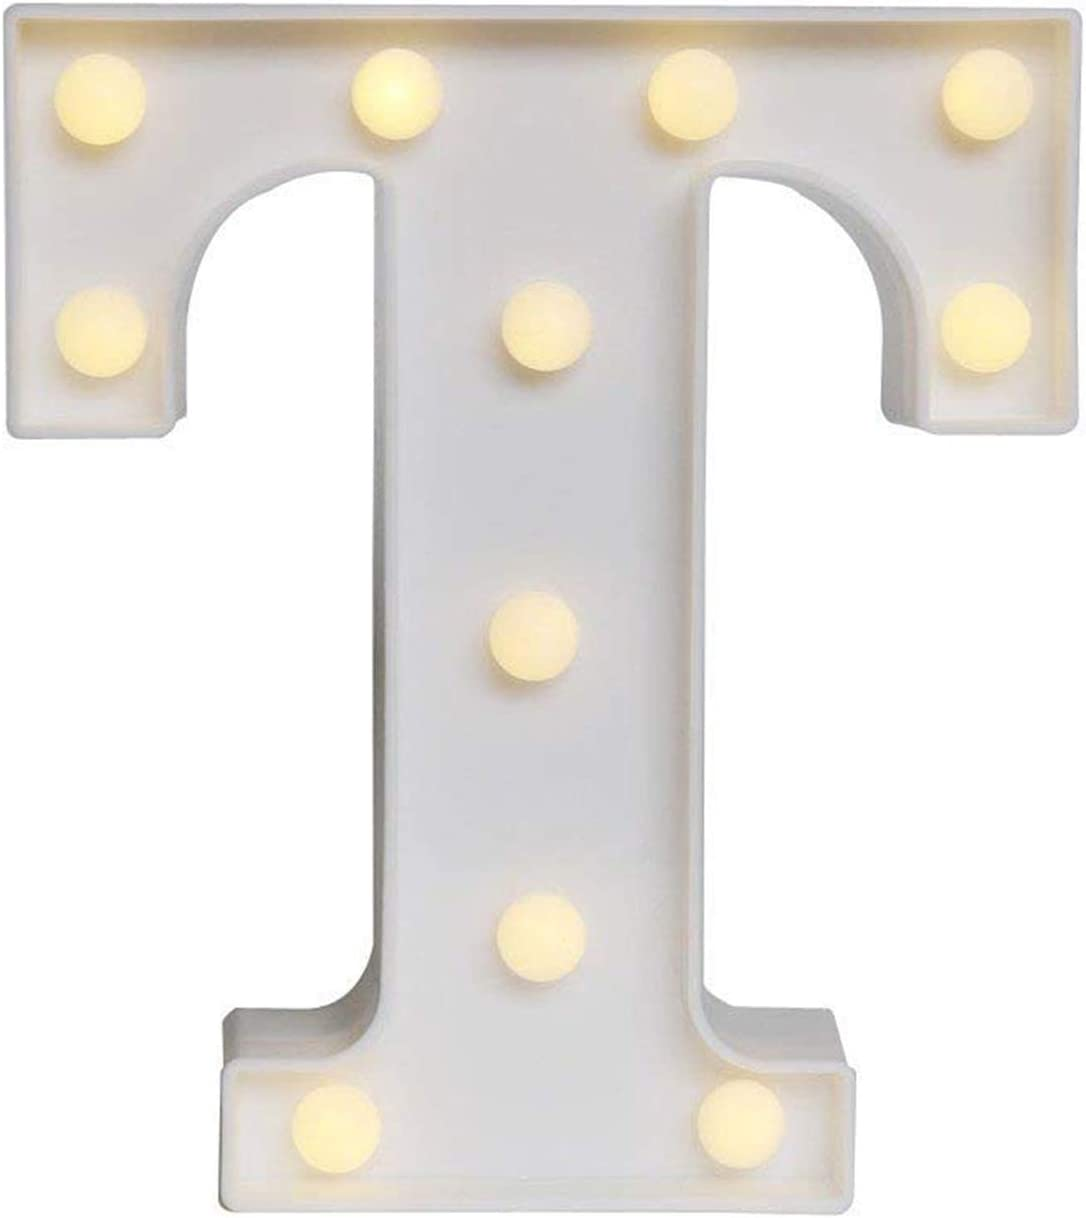 Ogrmar Decorative Led Light Up Number Letters, White Plastic Marquee Number Lights Sign Party Wedding Decor Battery Operated (T)